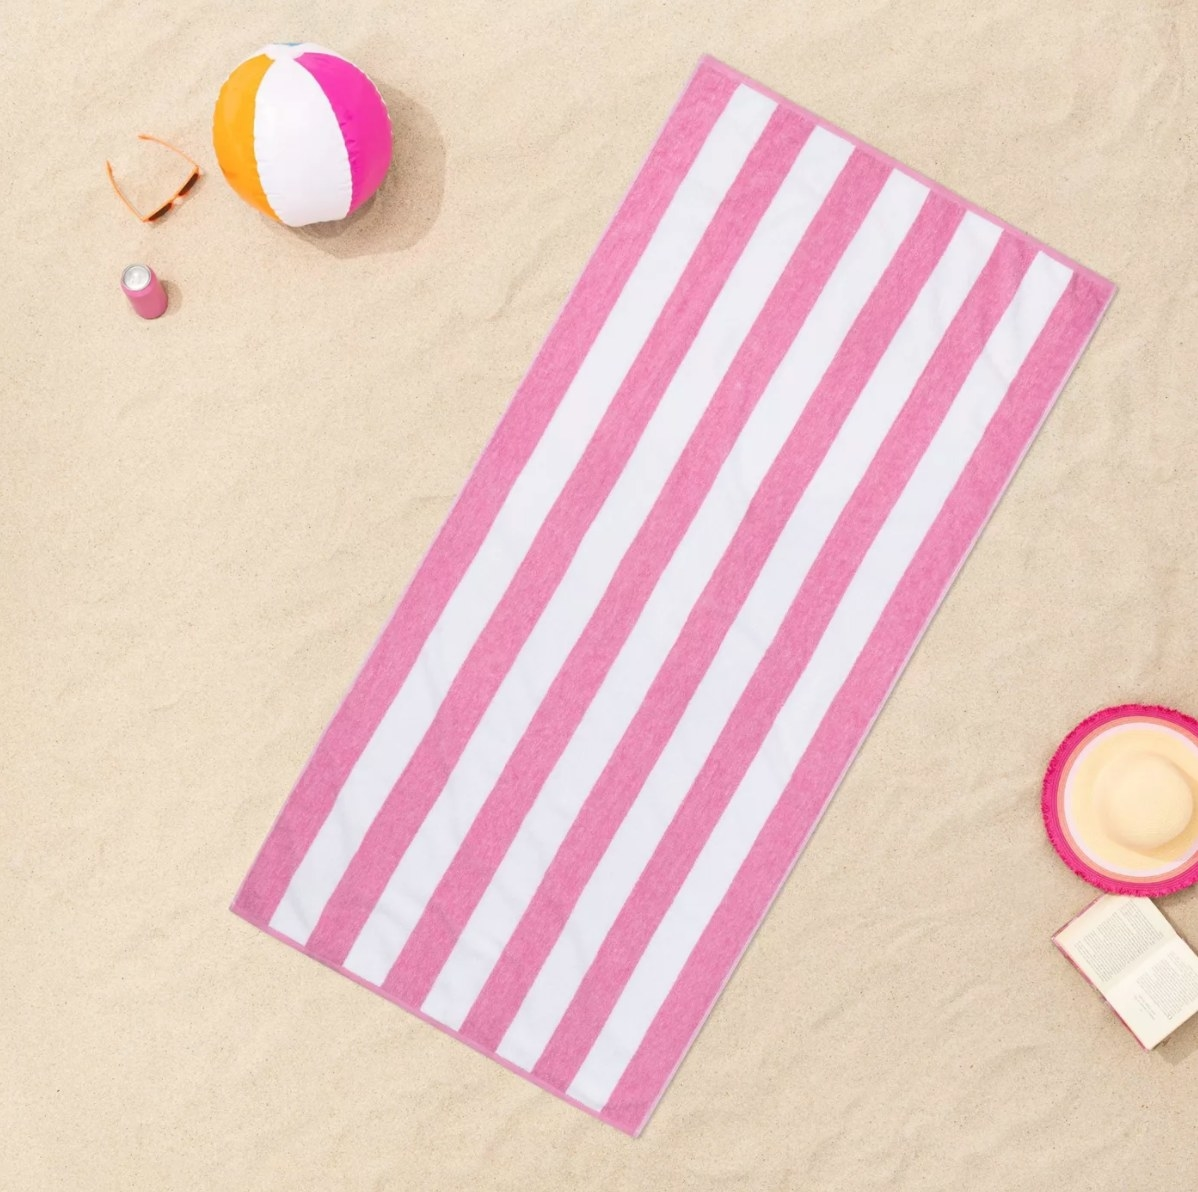 The striped beach towel in pink with white stripes with a beach ball, glasses, and a drink next to it